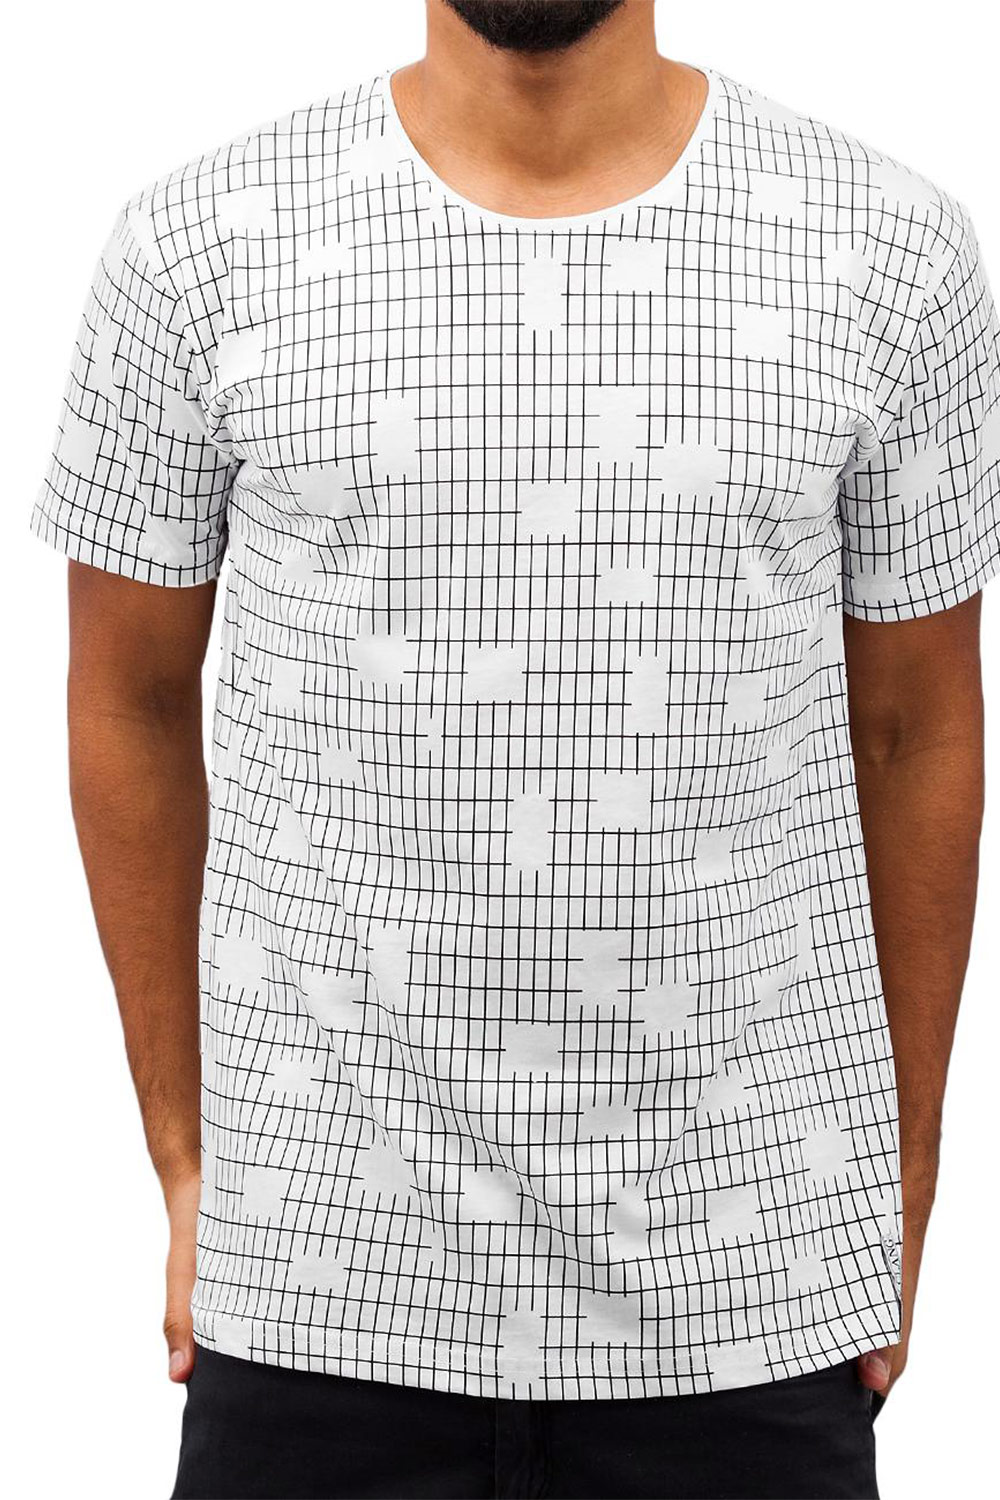 CAZZY CLANG Checked II T-Shirt White auf oboy.de